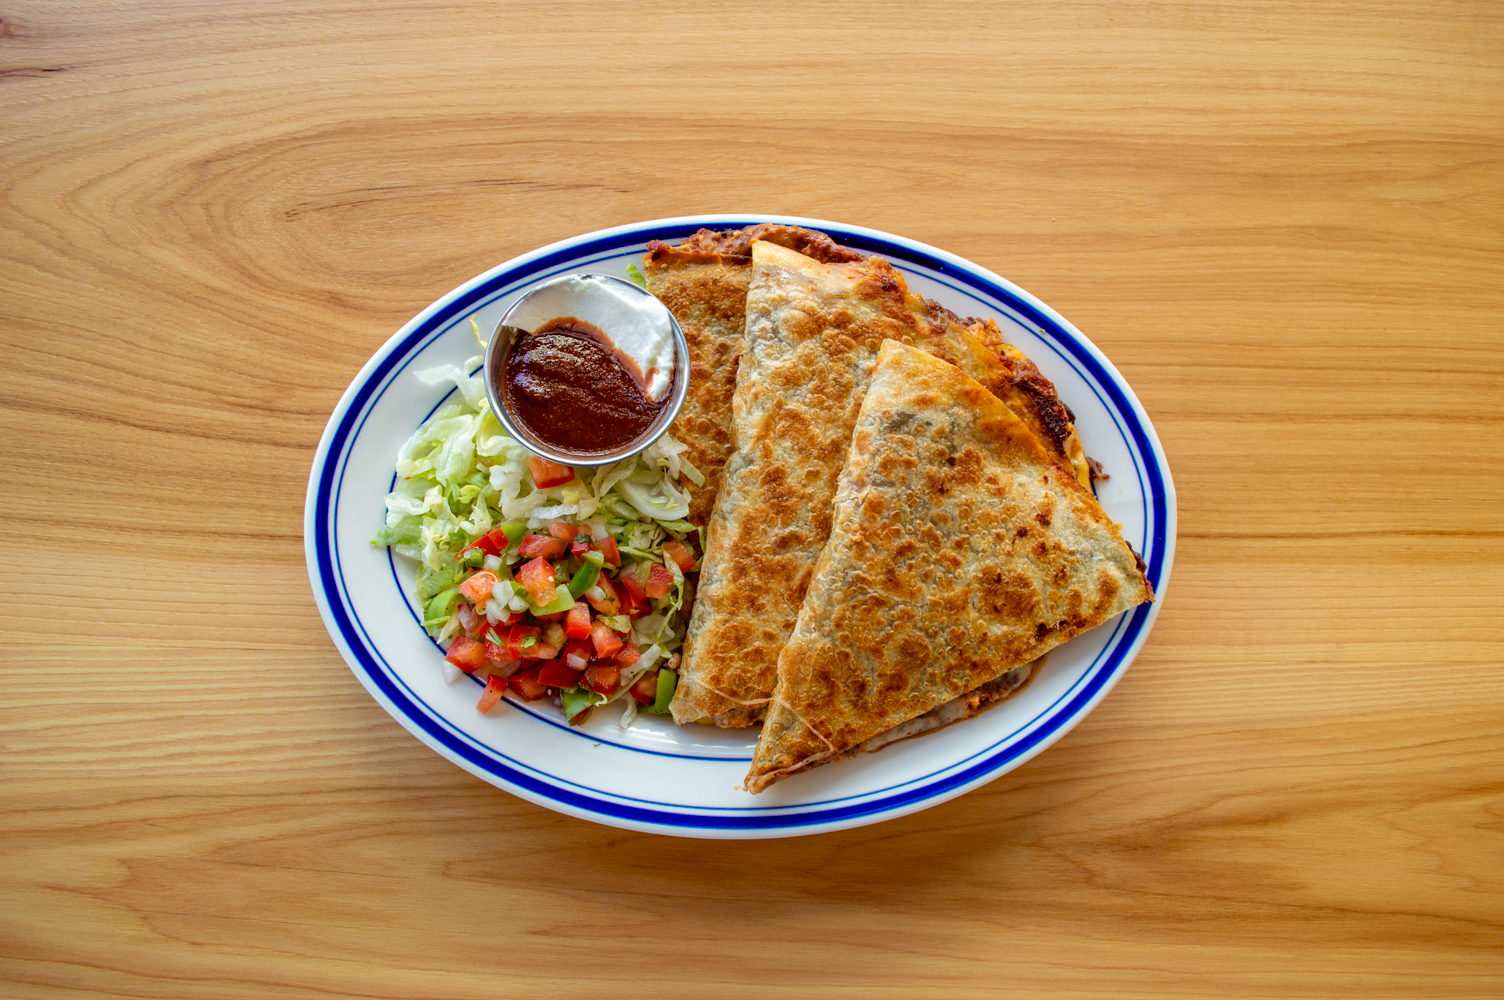 A blistery quesadilla with a small side salad and bowl of salsa and sour cream.